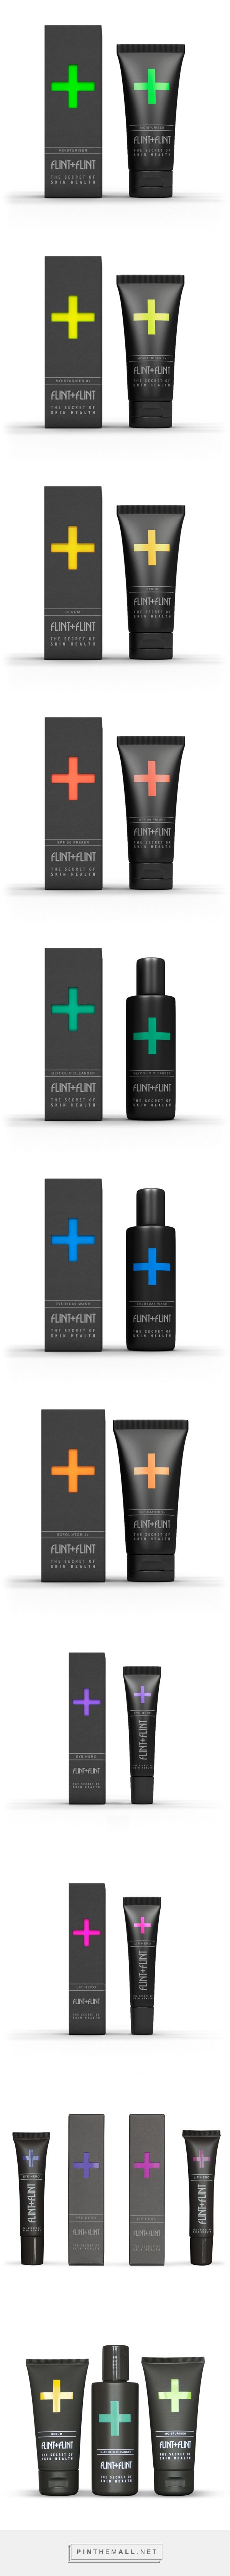 Professional Skincare product packaging for Flint+Flint curated by Packaging Diva PD. What's your color?